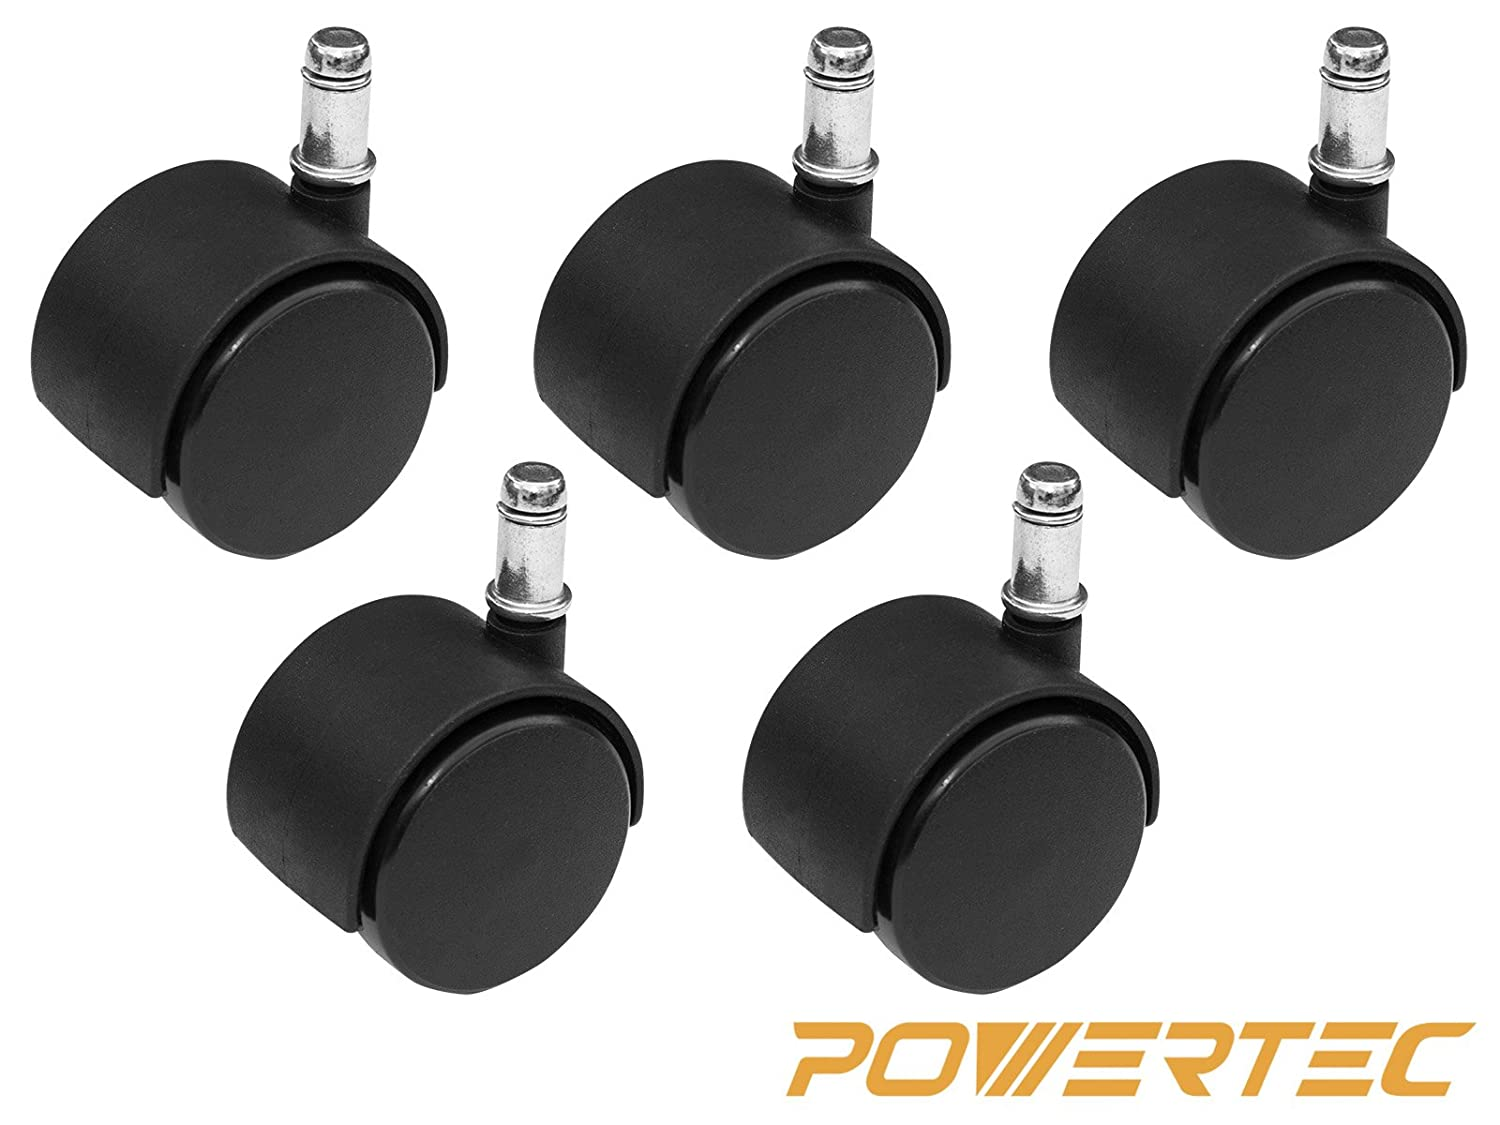 5-Pack POWERTEC 17100 Nylon Twin Wheel Chair Casters with 7//16-Inch x 7//8-Inch Grip Ring Stem Black